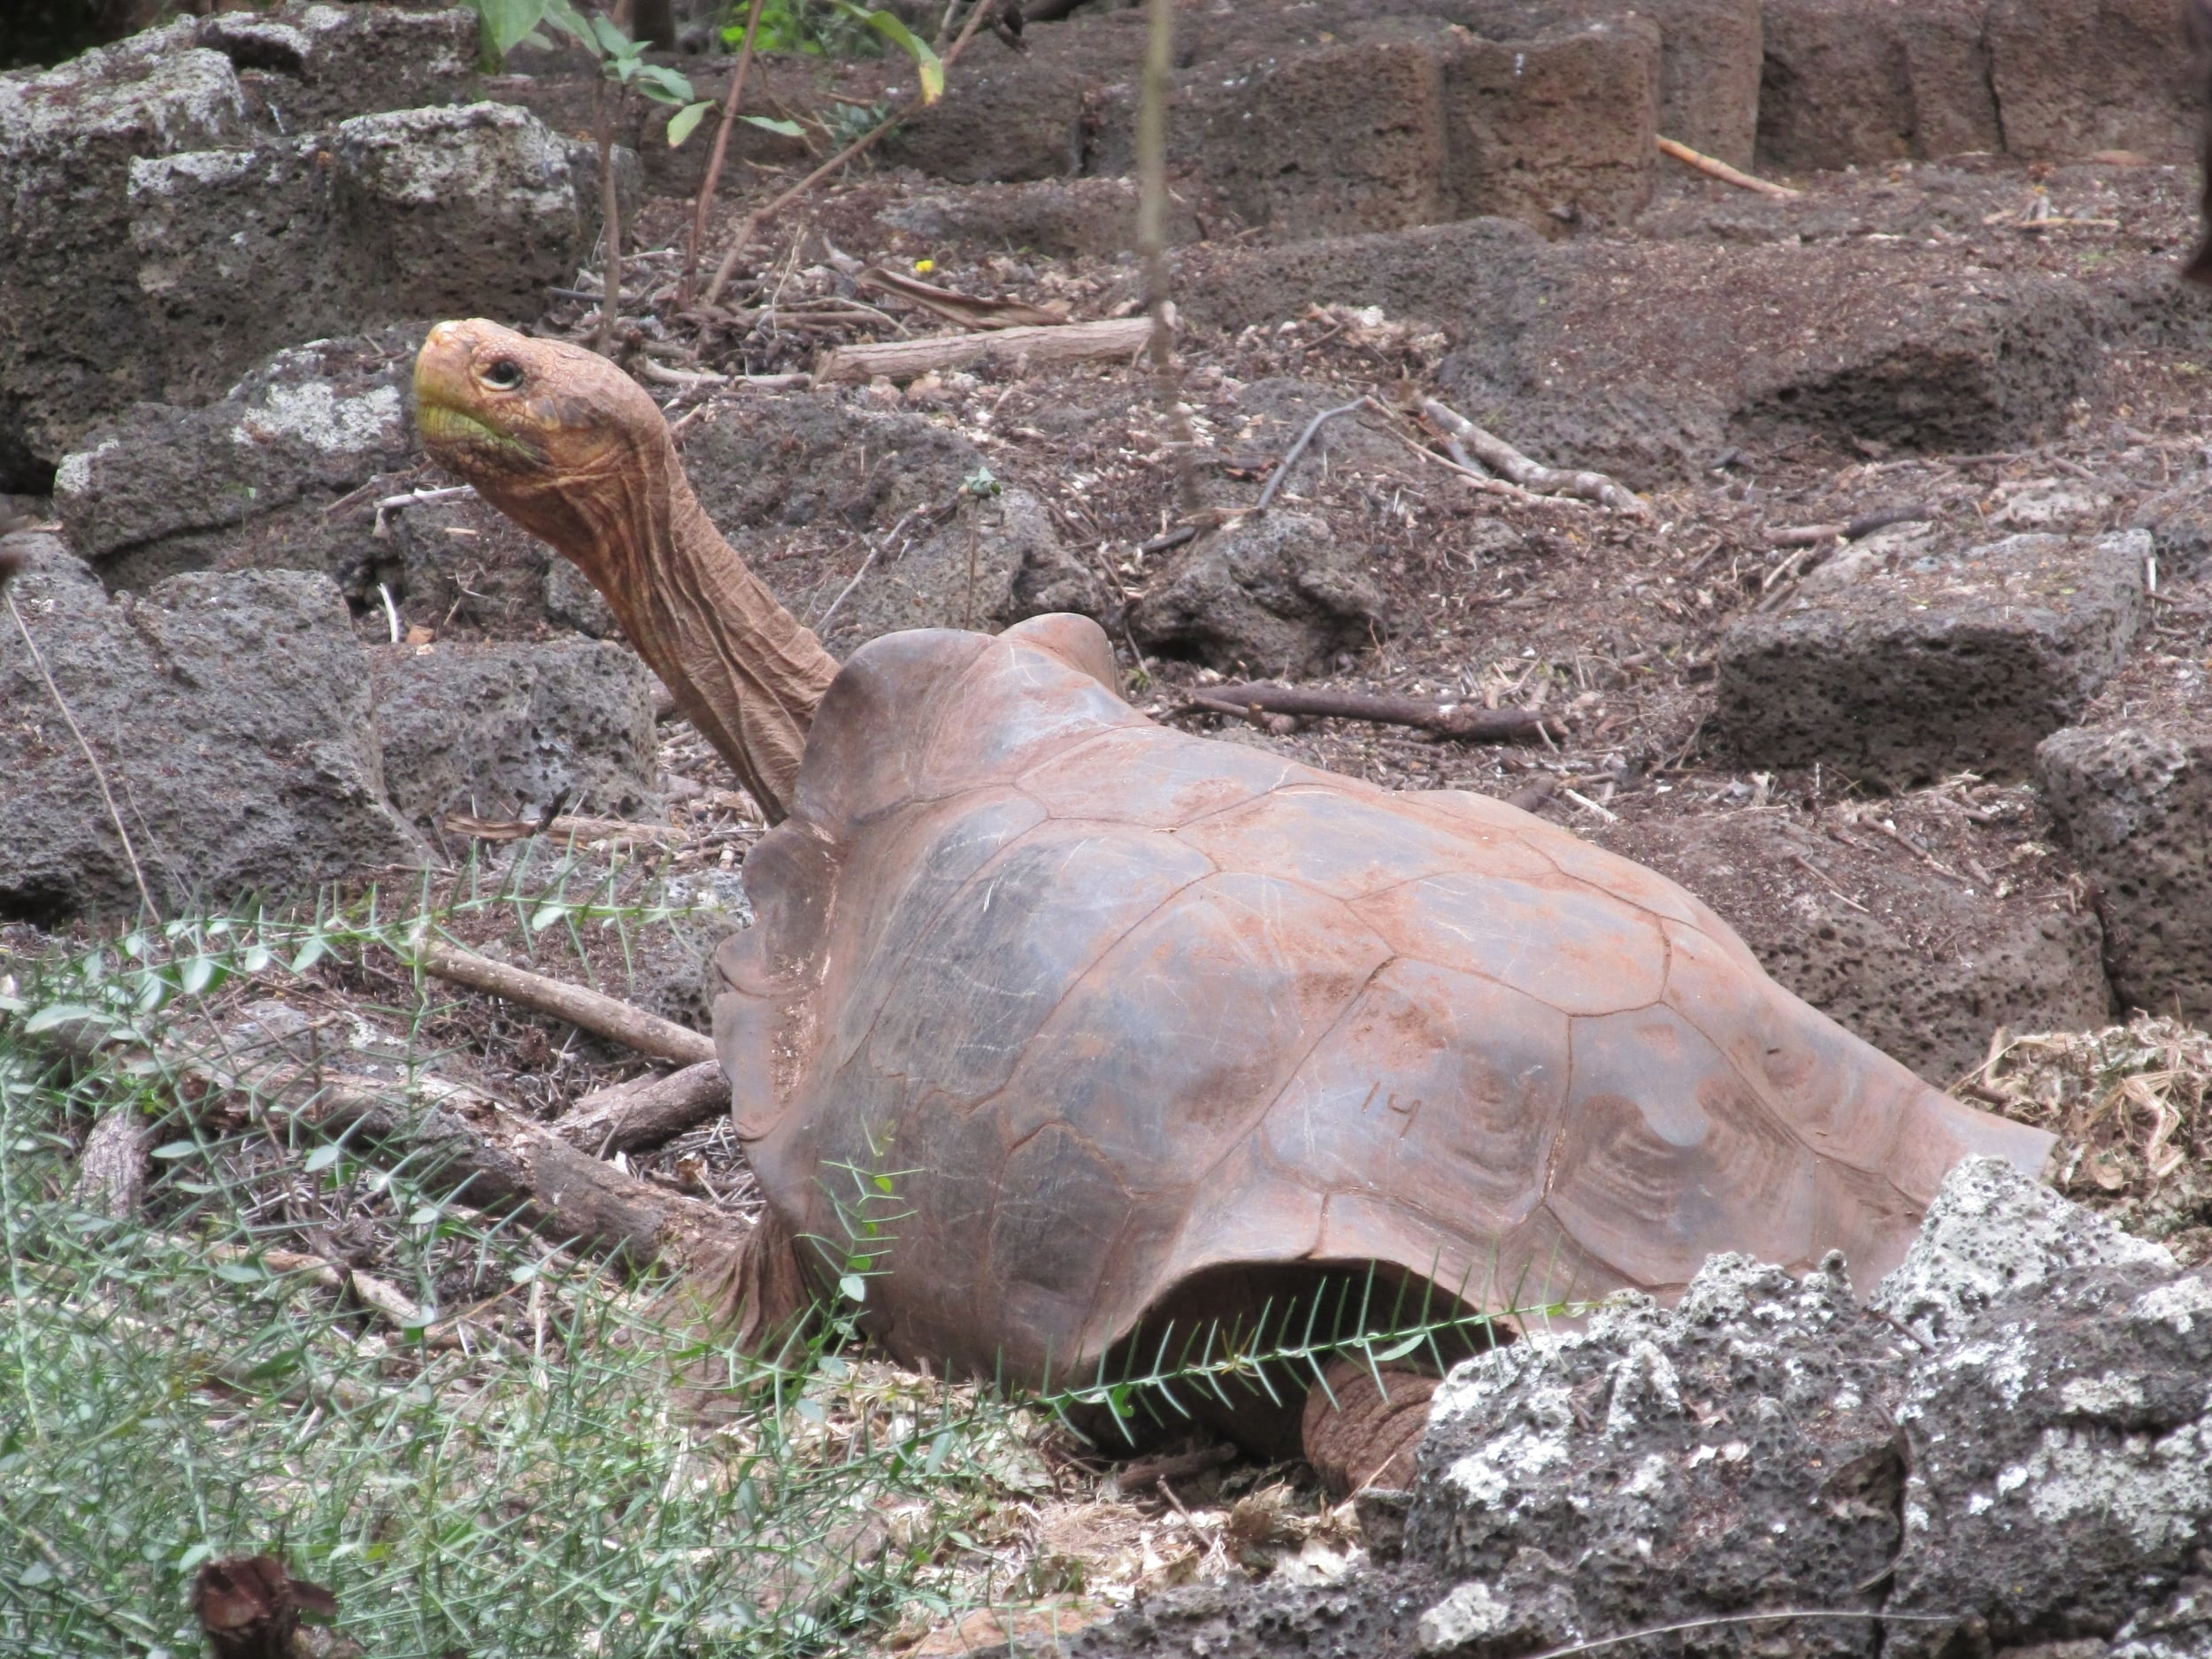 This tortoise evolved a saddleback to allow its long neck to reach delicious cactii.